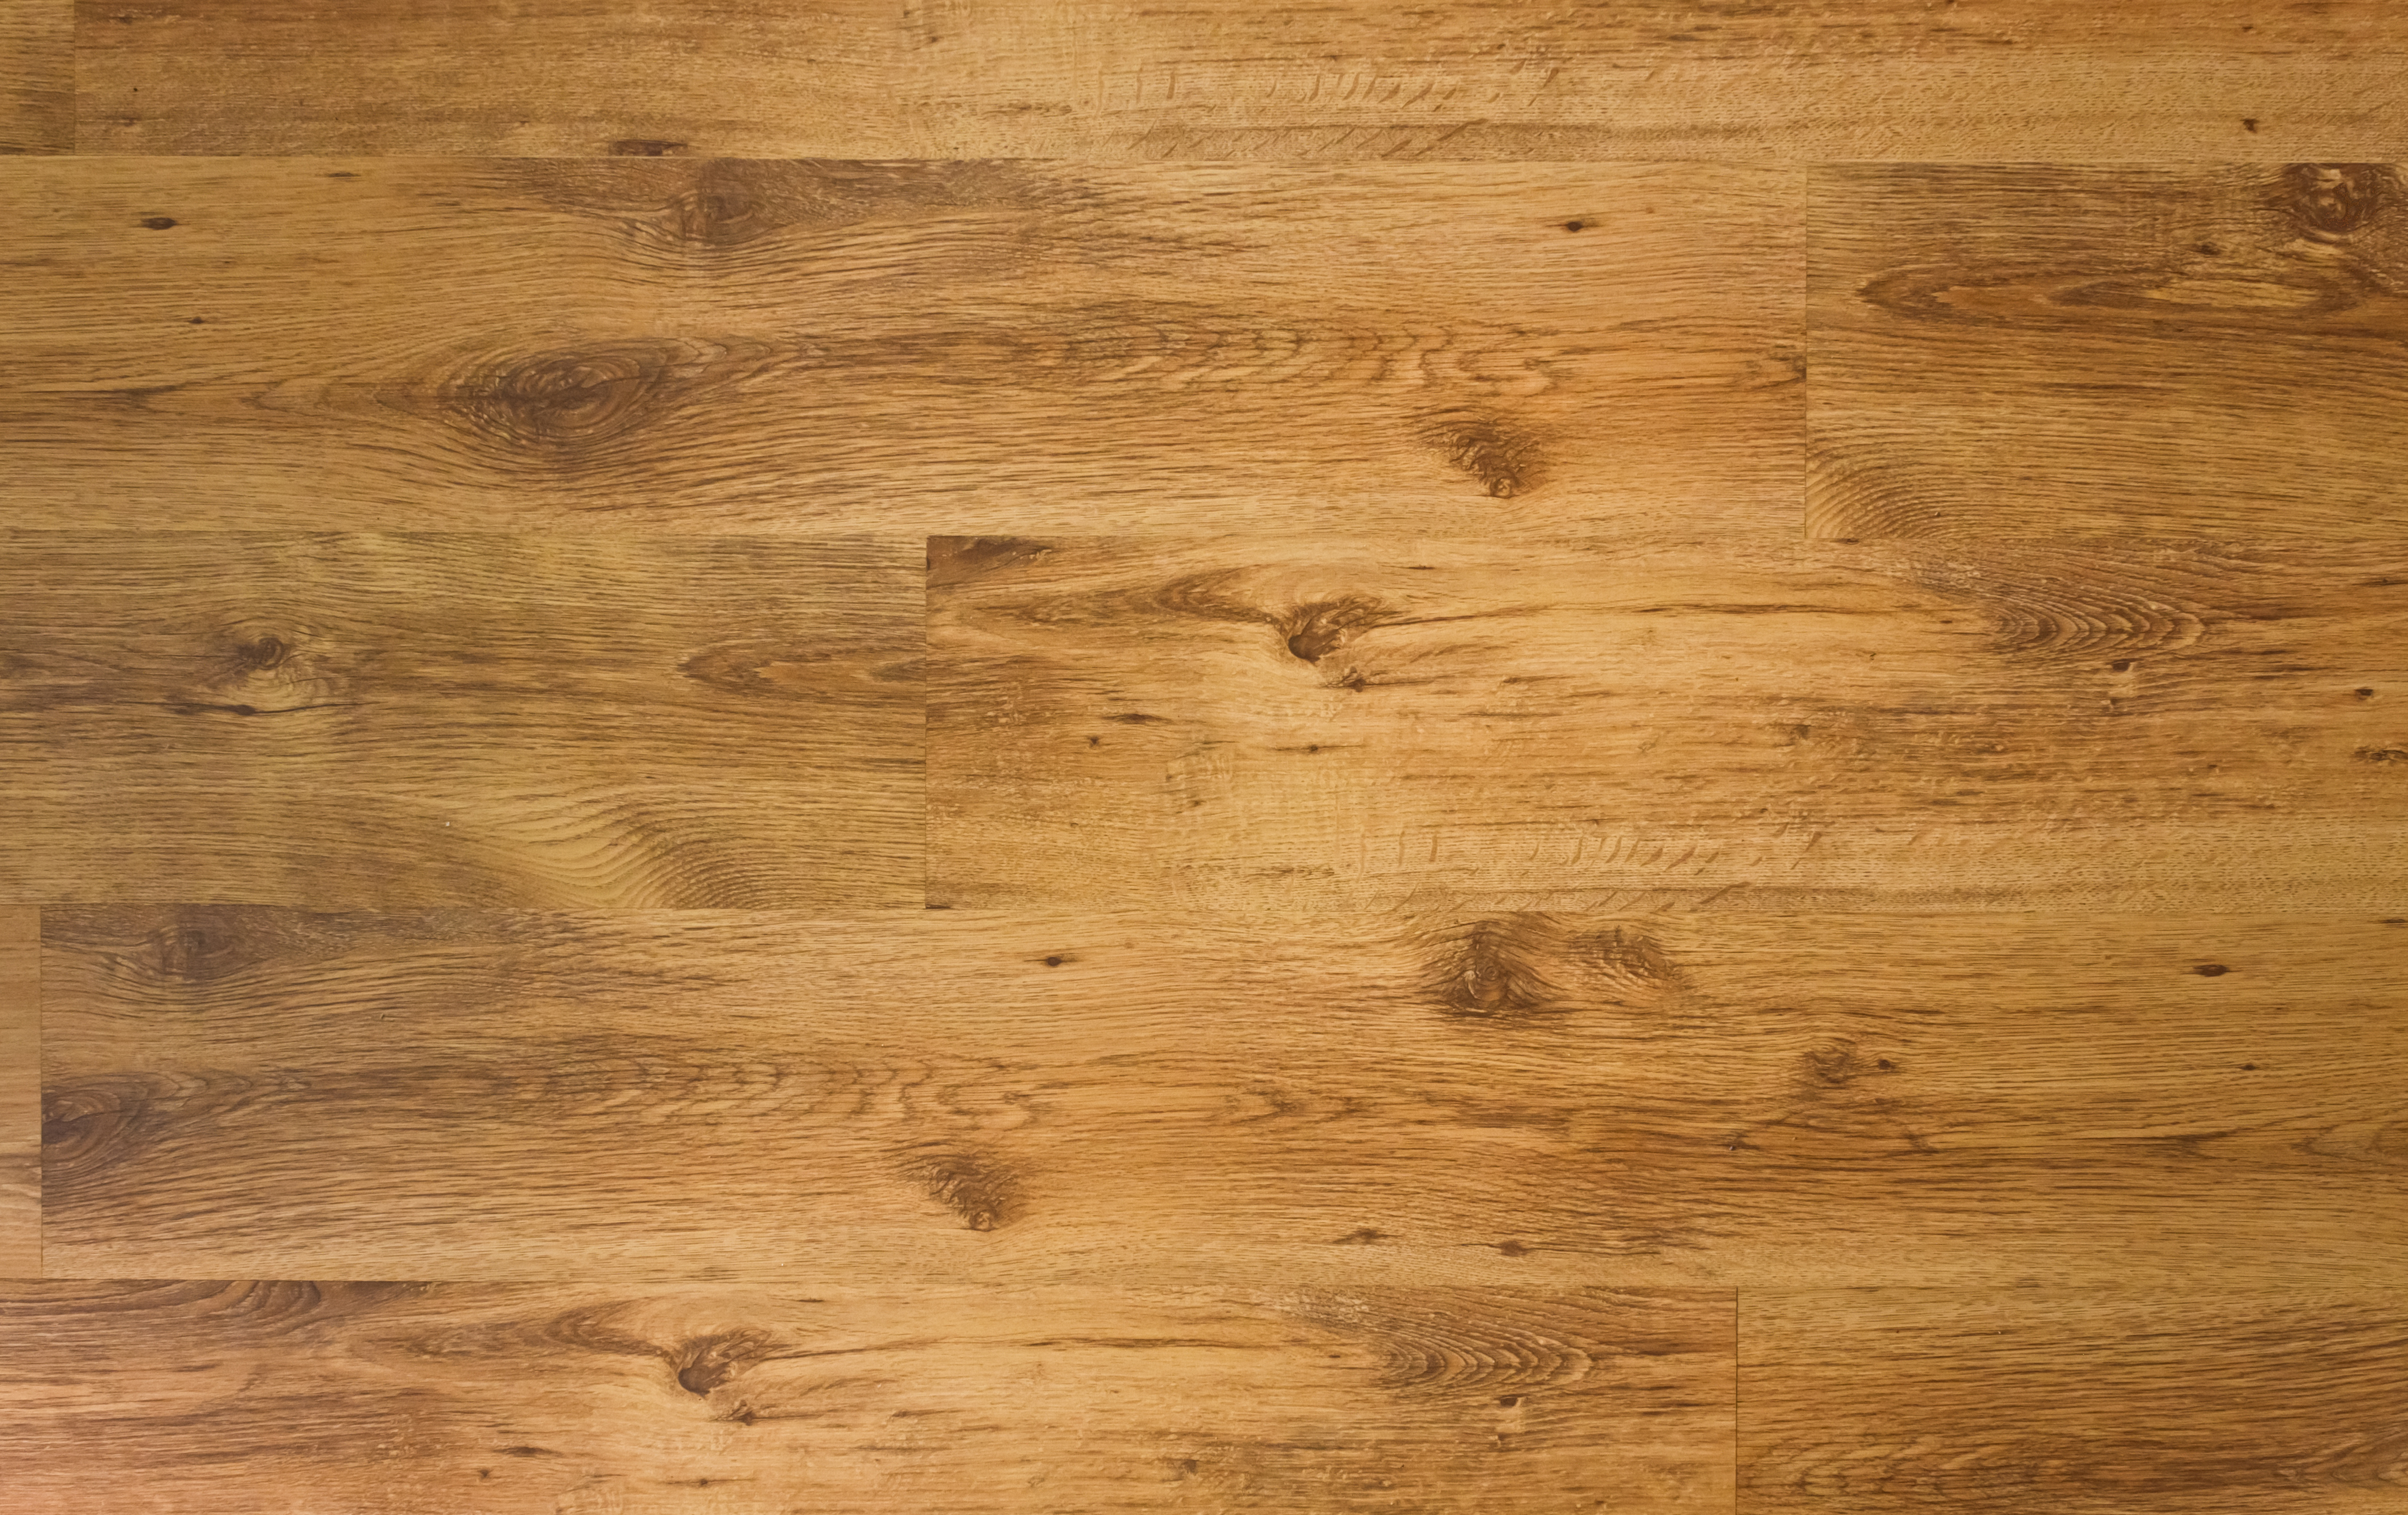 Wallpaper for Walls That Looks Like Wood